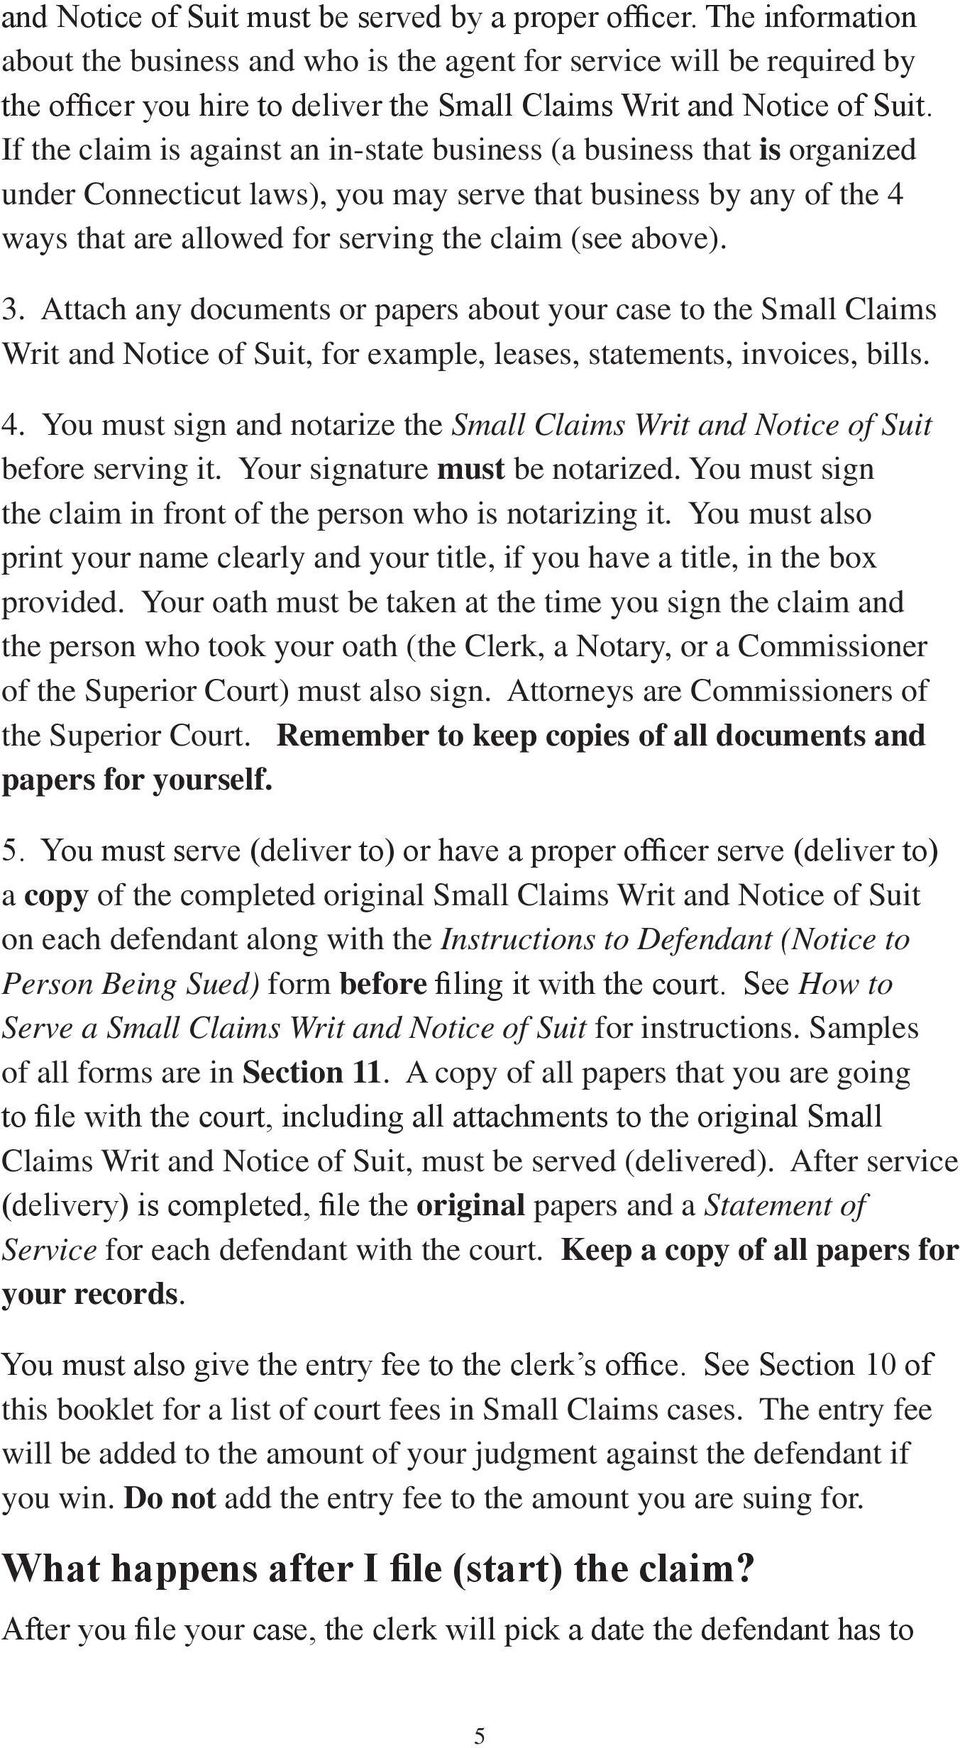 If the claim is against an in-state business (a business that is organized under Connecticut laws), you may serve that business by any of the 4 ways that are allowed for serving the claim (see above).